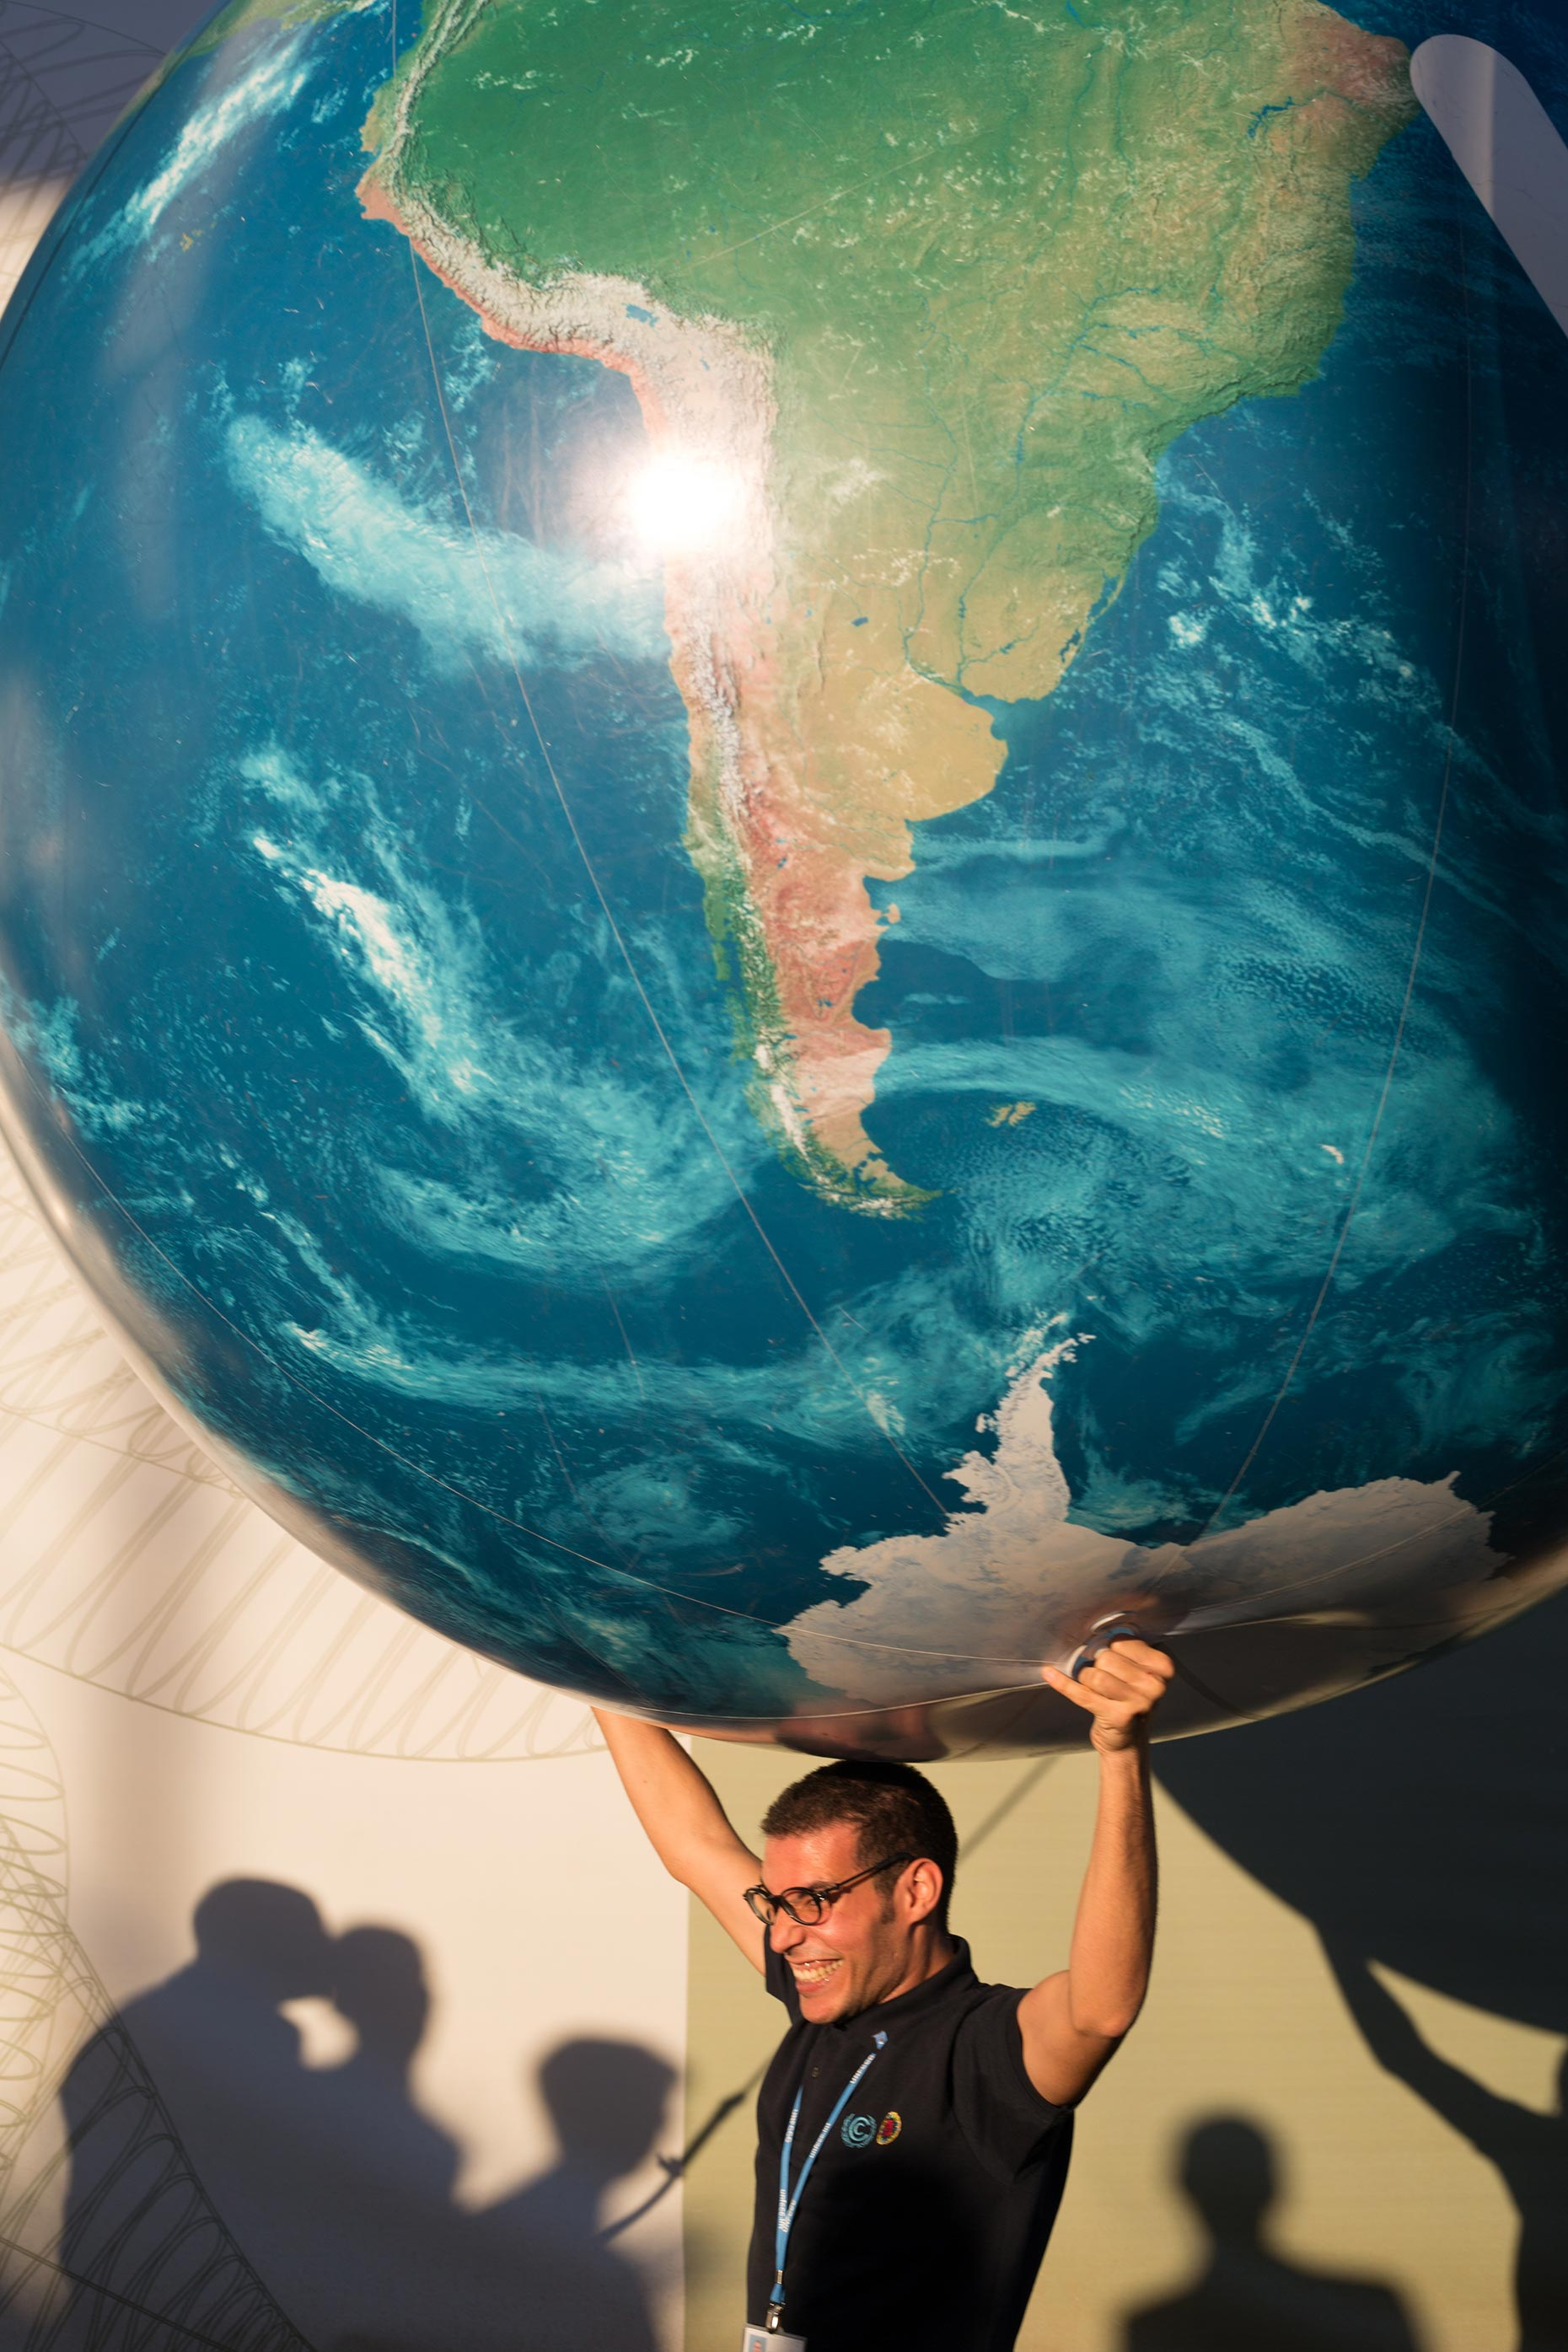 man holding the world on shoulders, by Scotland Greenpeace photographer